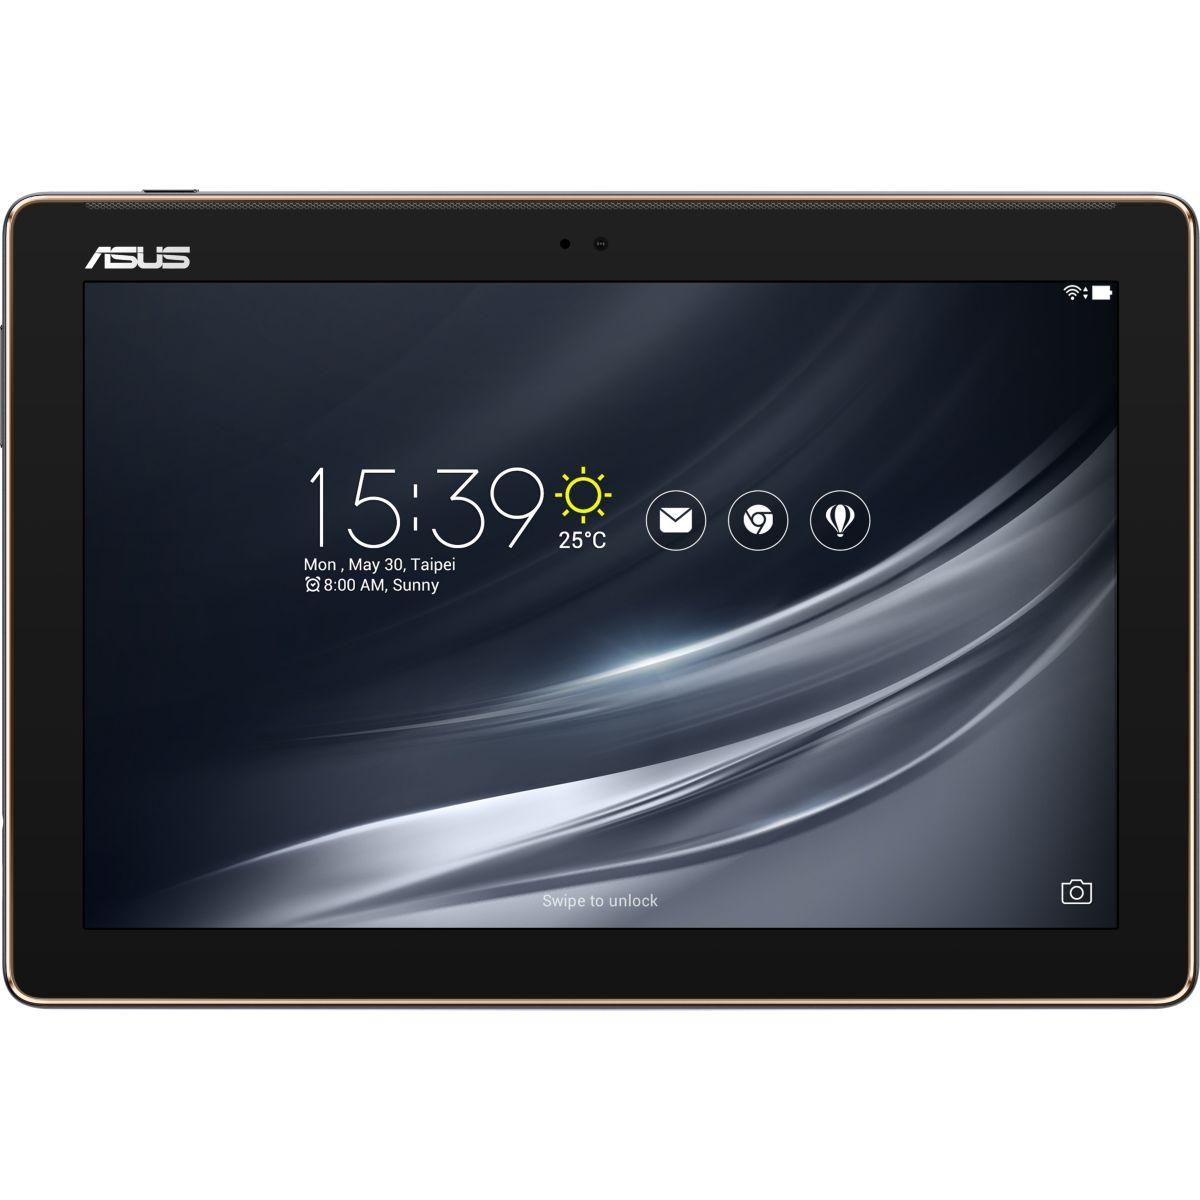 Tablette android asus z0130mf-1d002a 32go bleue (photo)